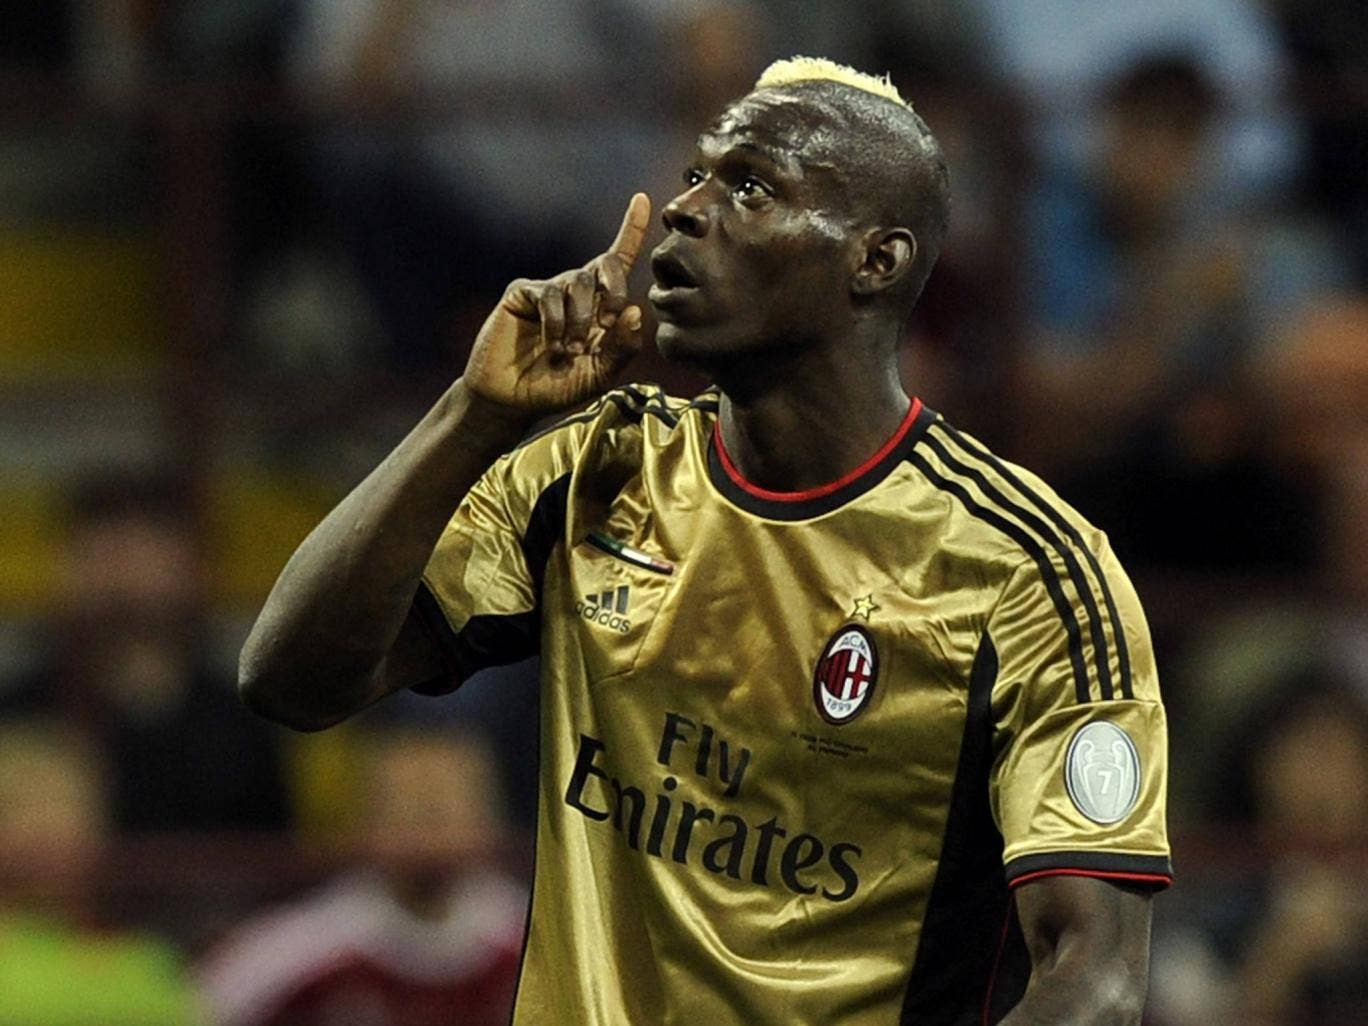 Mario Balotelli reacts to abuse from Roma fans